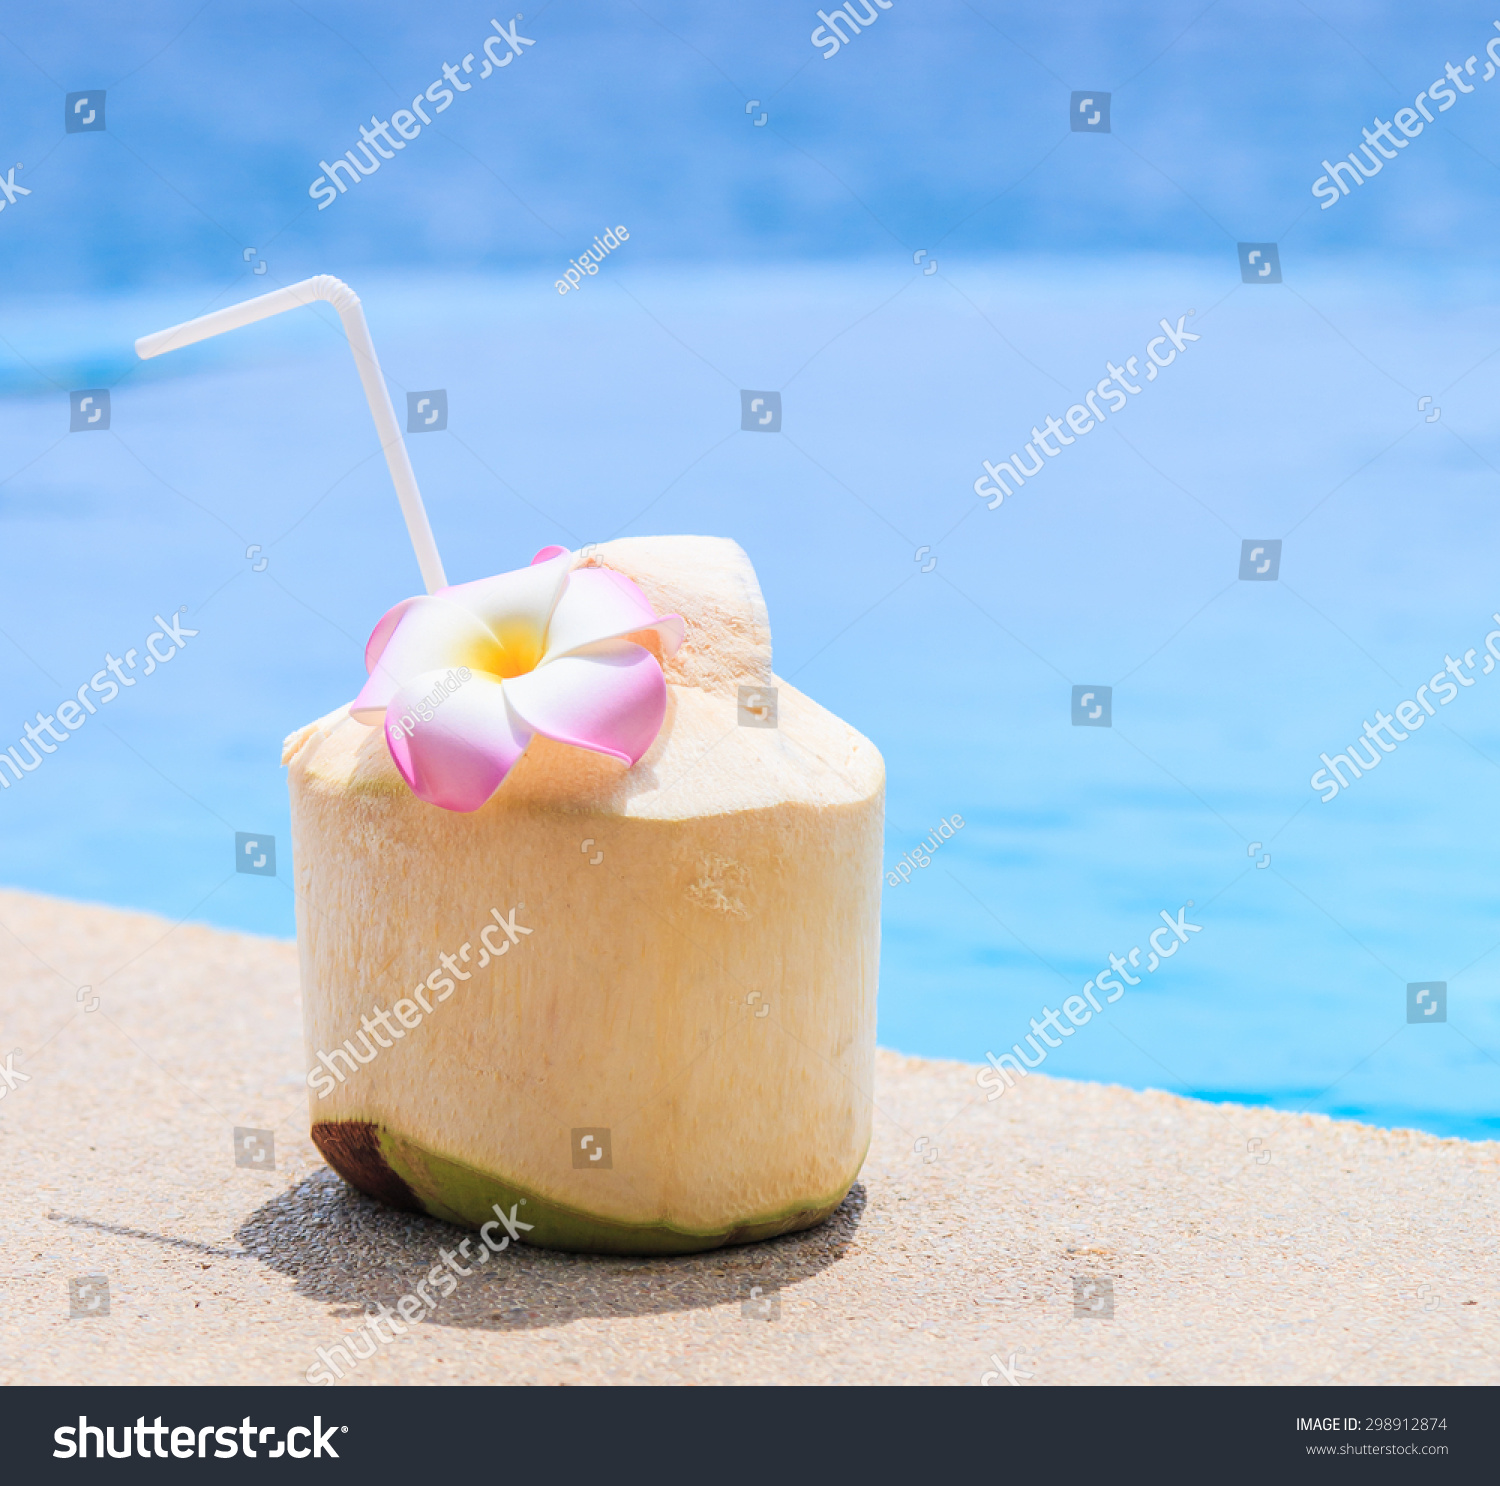 Coconut water drink swimming pool stock photo 298912874 shutterstock How to make swimming pool water drinkable